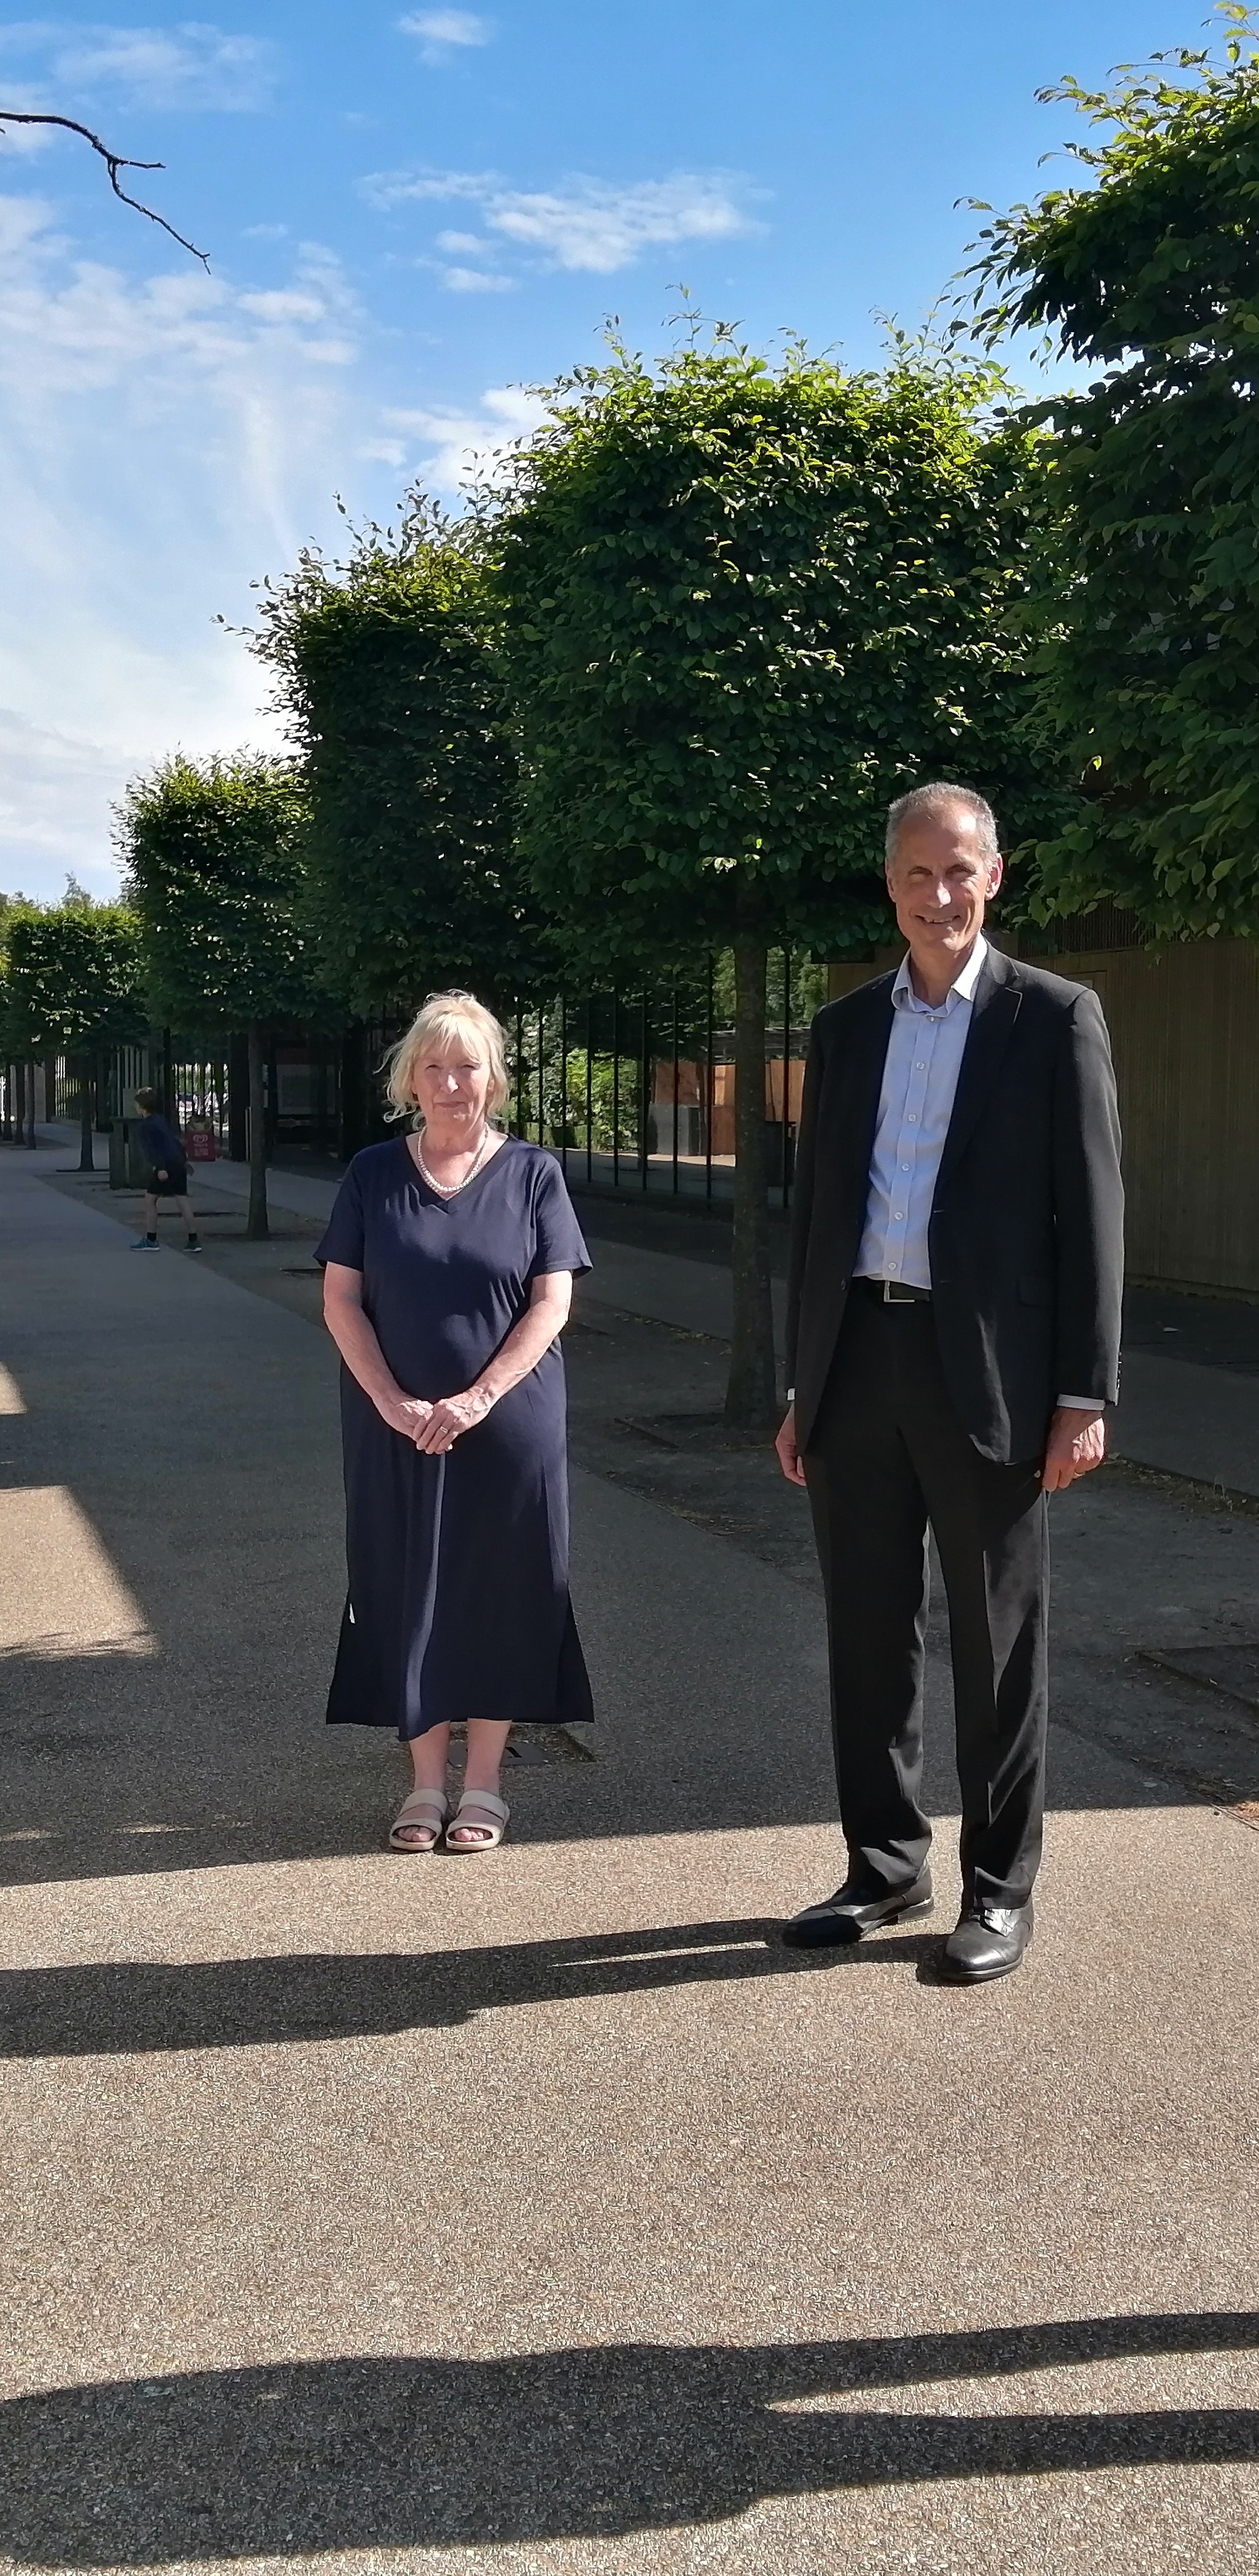 Alleyways project will be 'huge boost' for Formby, says MP